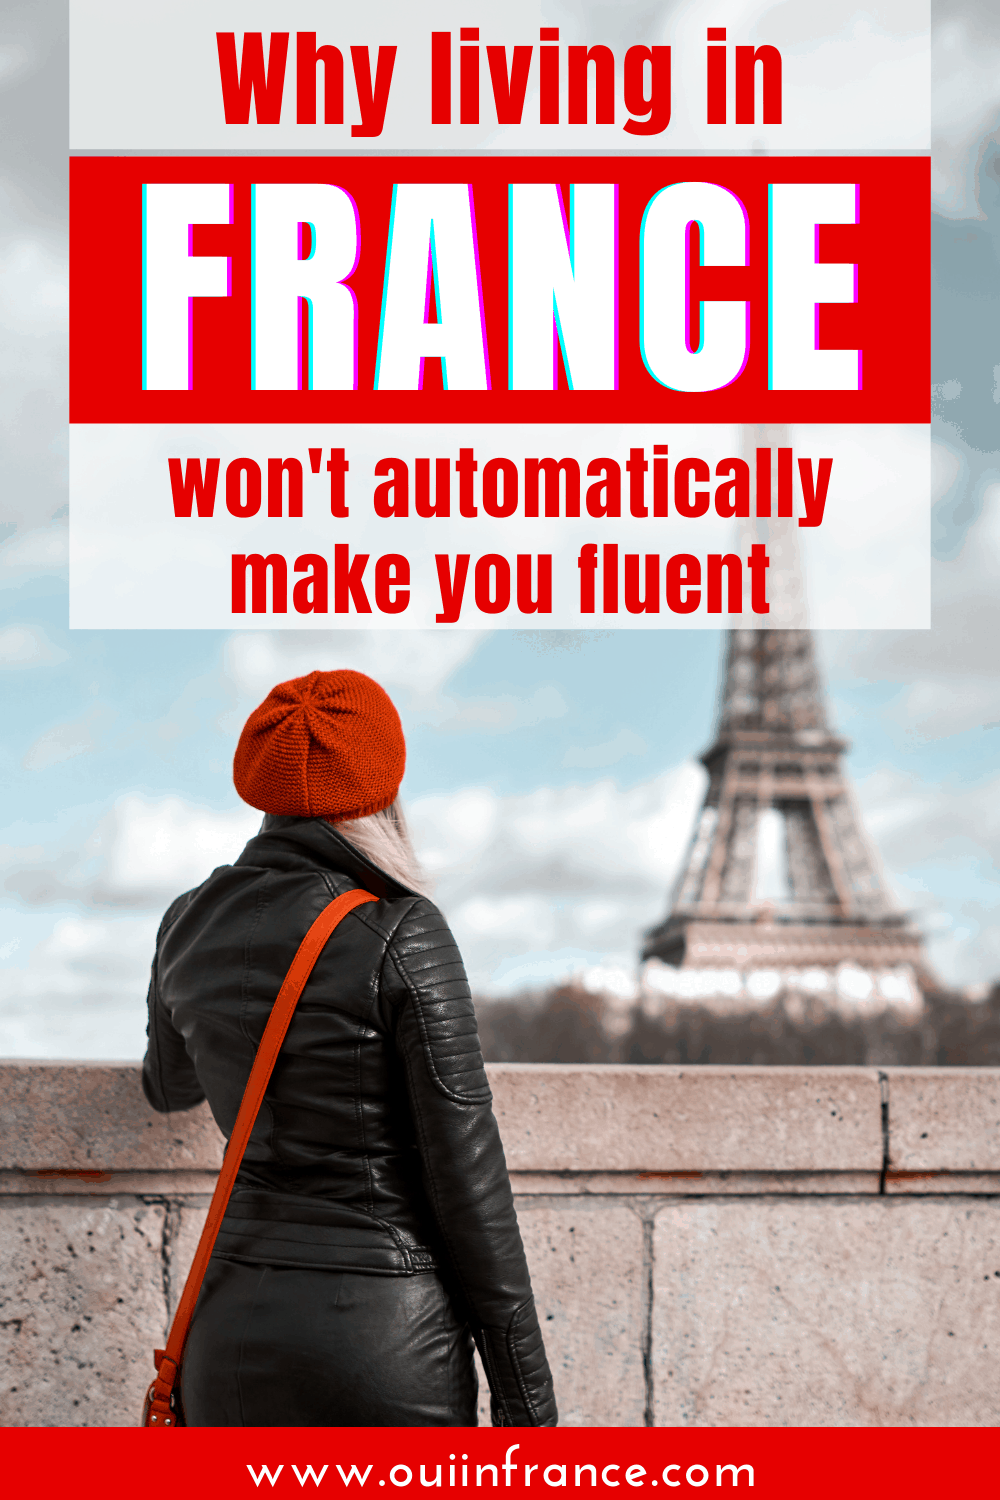 france won't automatically make you fluent